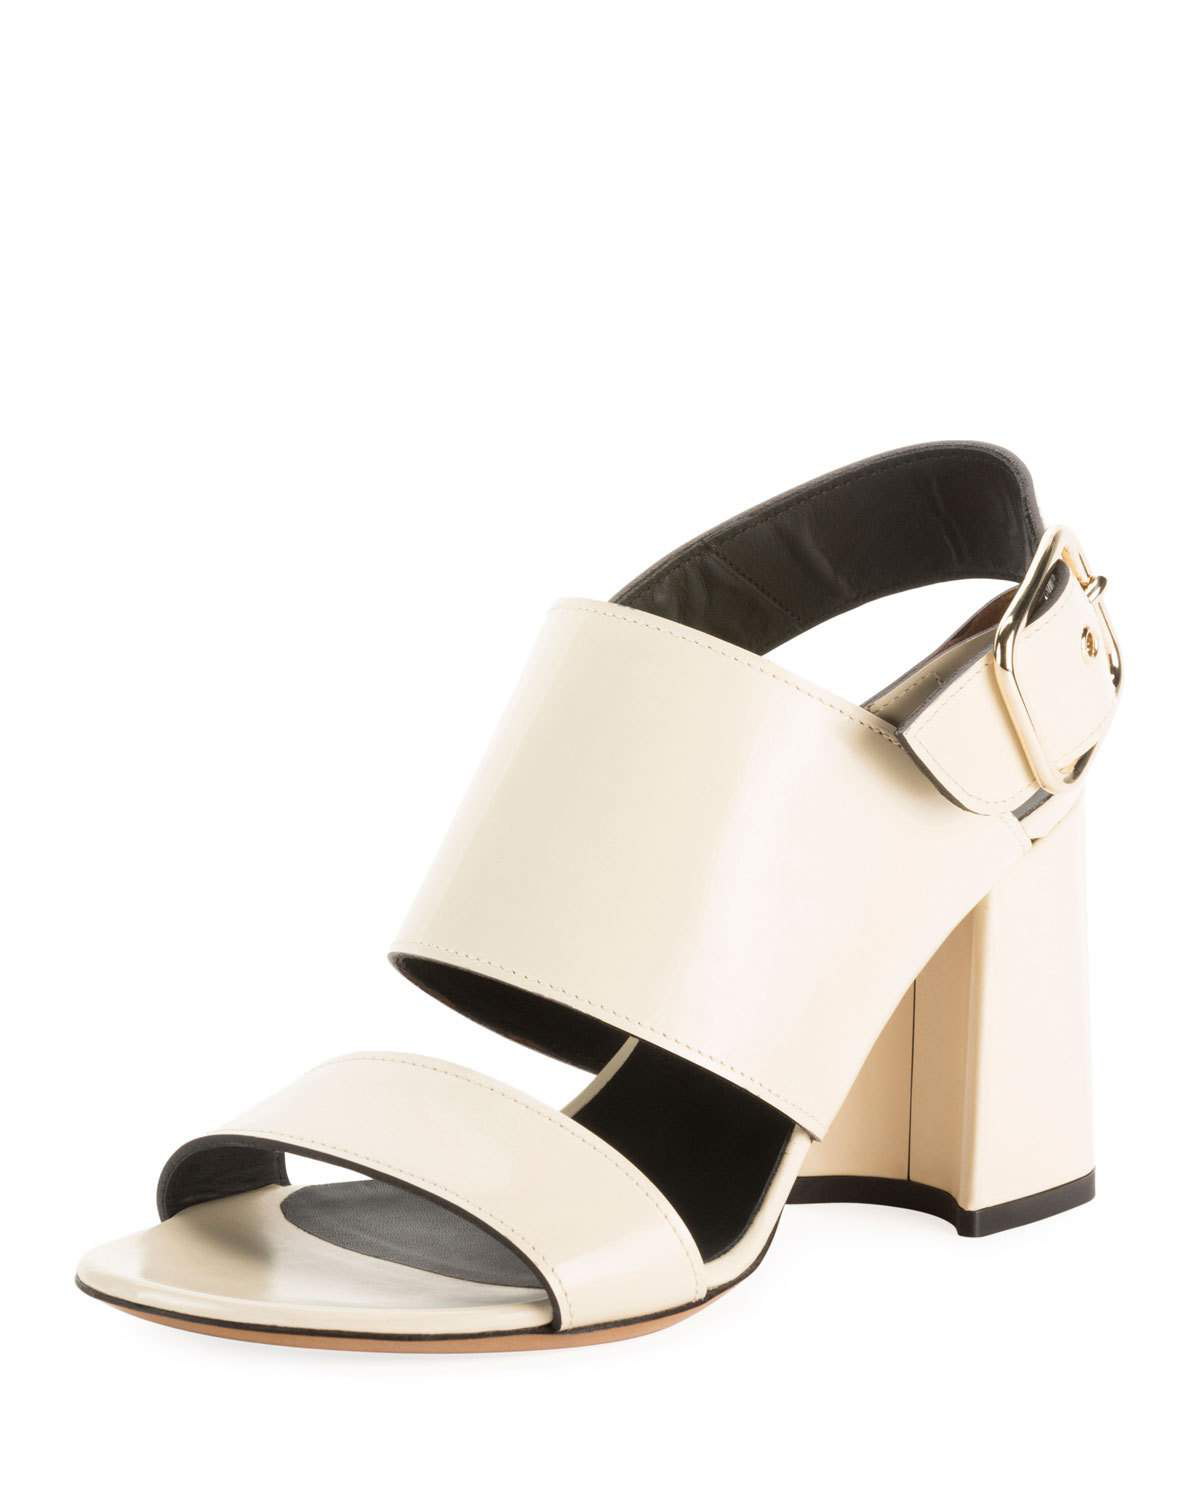 376ff3dba7 Dries Van Noten Calf Leather Chunky Heel Sandals In Beige | ModeSens